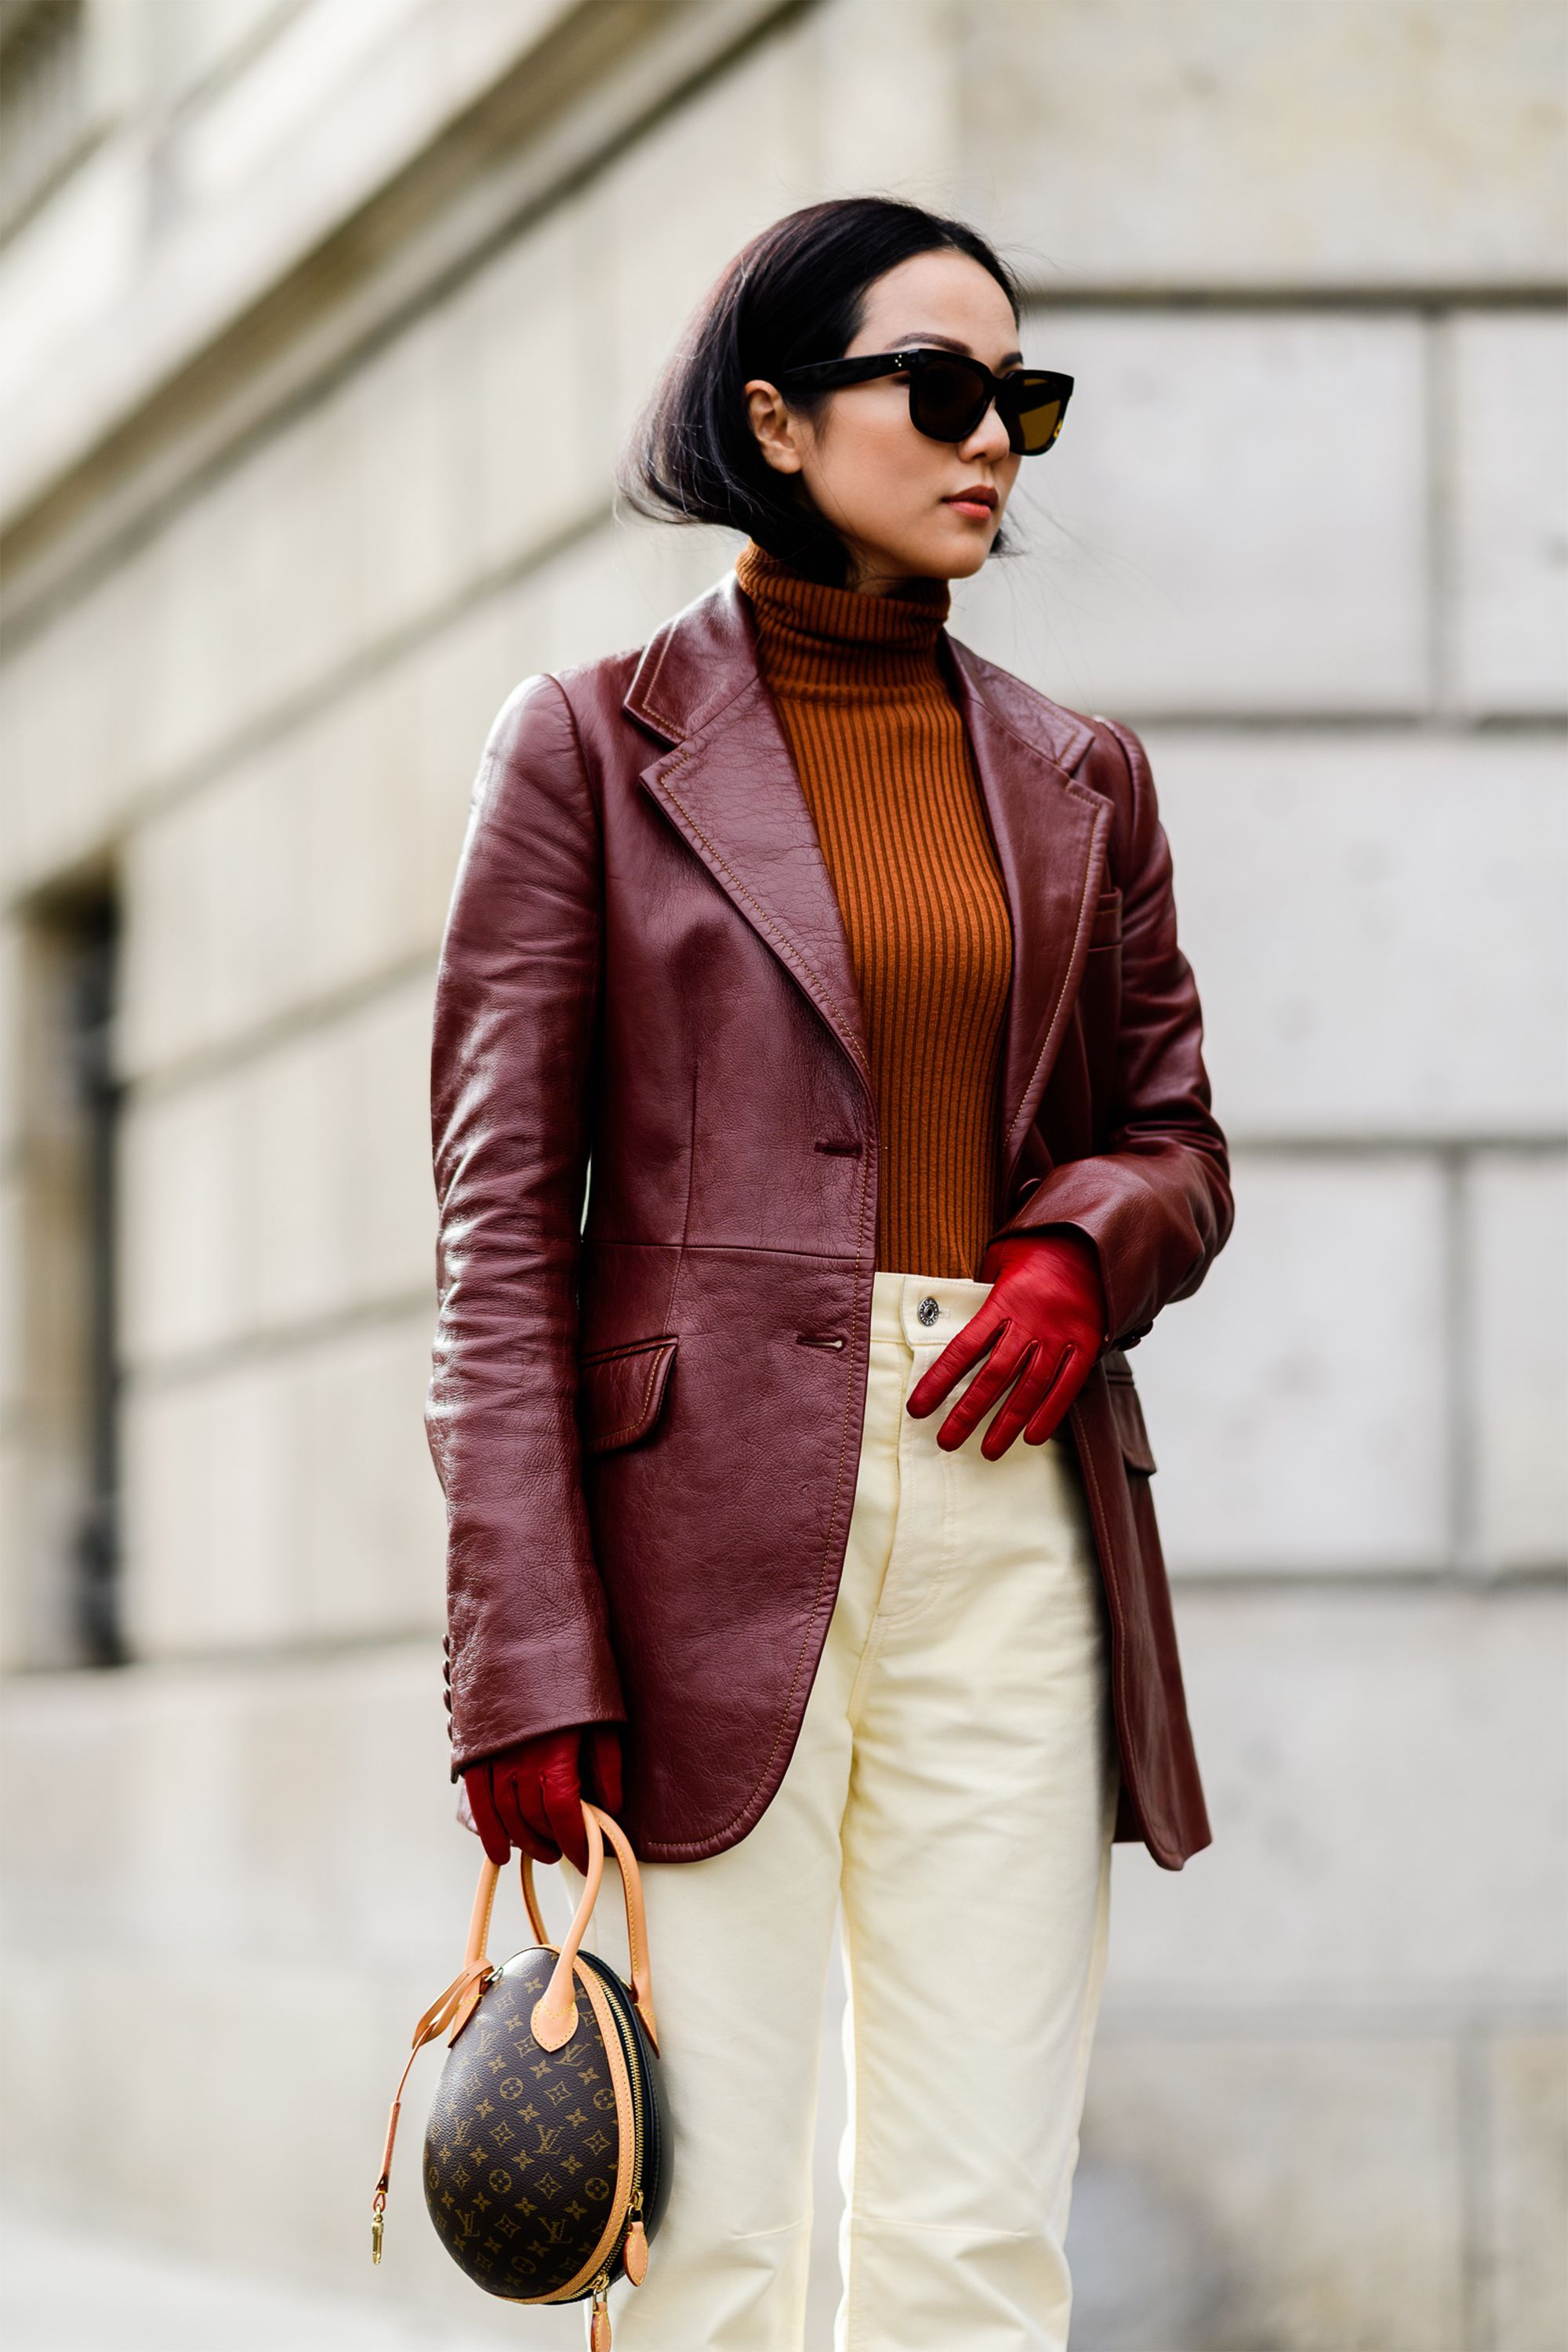 0091c8851 Fall Outfit Ideas for Work - Best Fall Wardrobe Pieces for Women